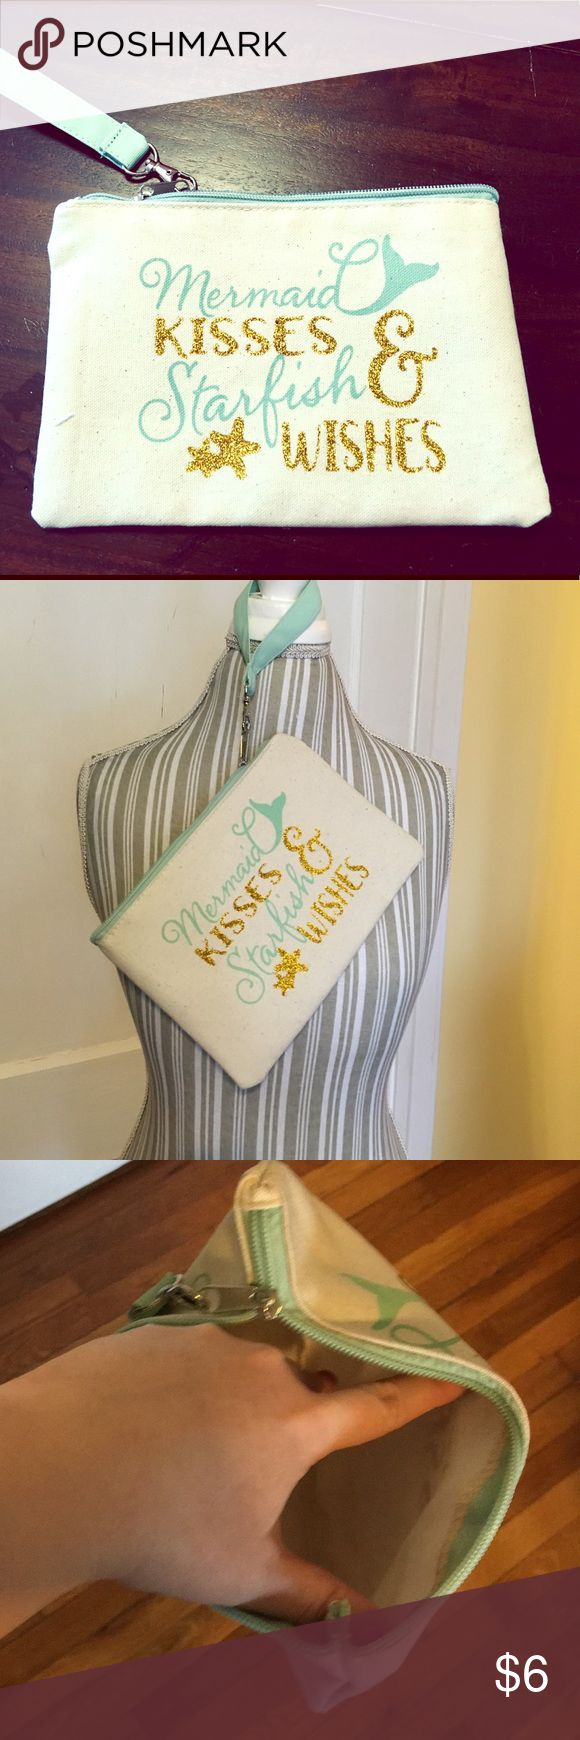 """NWOT Canvas """"Mermaid ♀️ Kisses"""" Cosmetics Bag Super cute canvas makeup bag or wristlet! White background for the body, aqua edging and detachable wristlet loop. Says """"Mermaid Kisses & Starfish Wishes"""" in aqua and gold cursive lettering.  - Smoke free home but we have pets. -Bundle 2 or more items for 20% off. Bags Cosmetic Bags & Cases"""